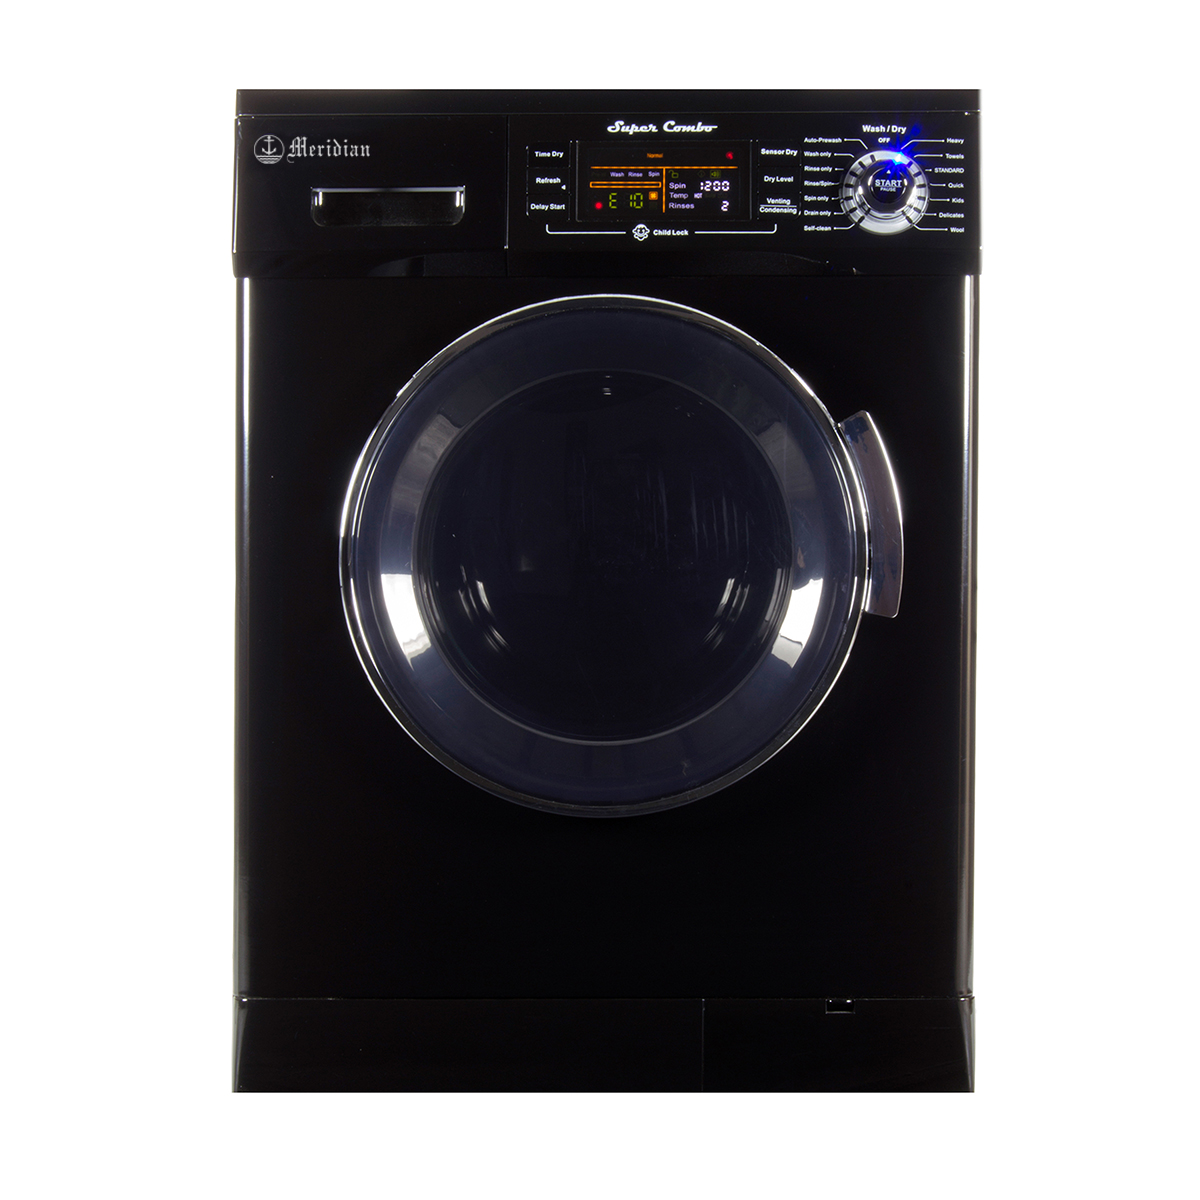 Meridian Super Combo MD 4400 CV Black